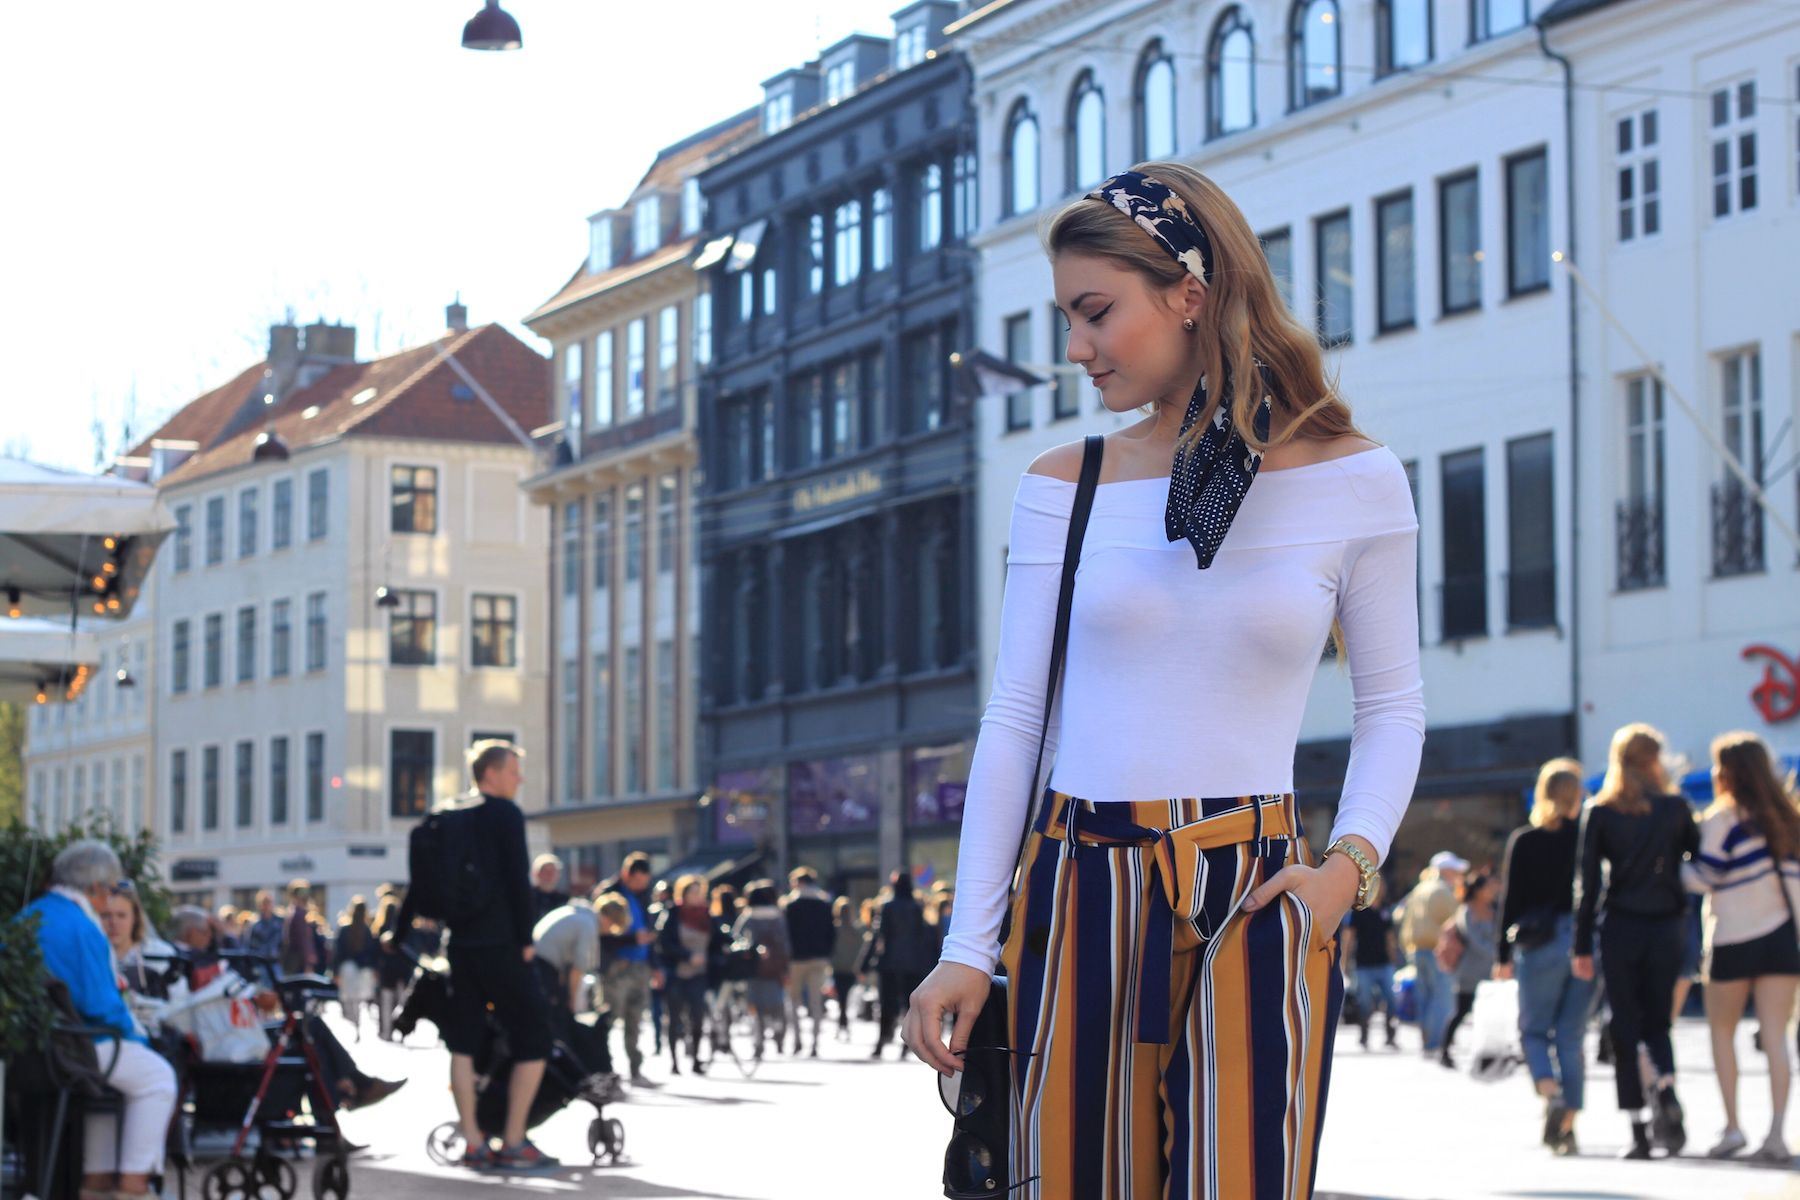 Juliana Chow Fashion Blog Outfit Lifestyle Copenhagen Audrey Hepburn Instagram Outfit of The Day Model 10